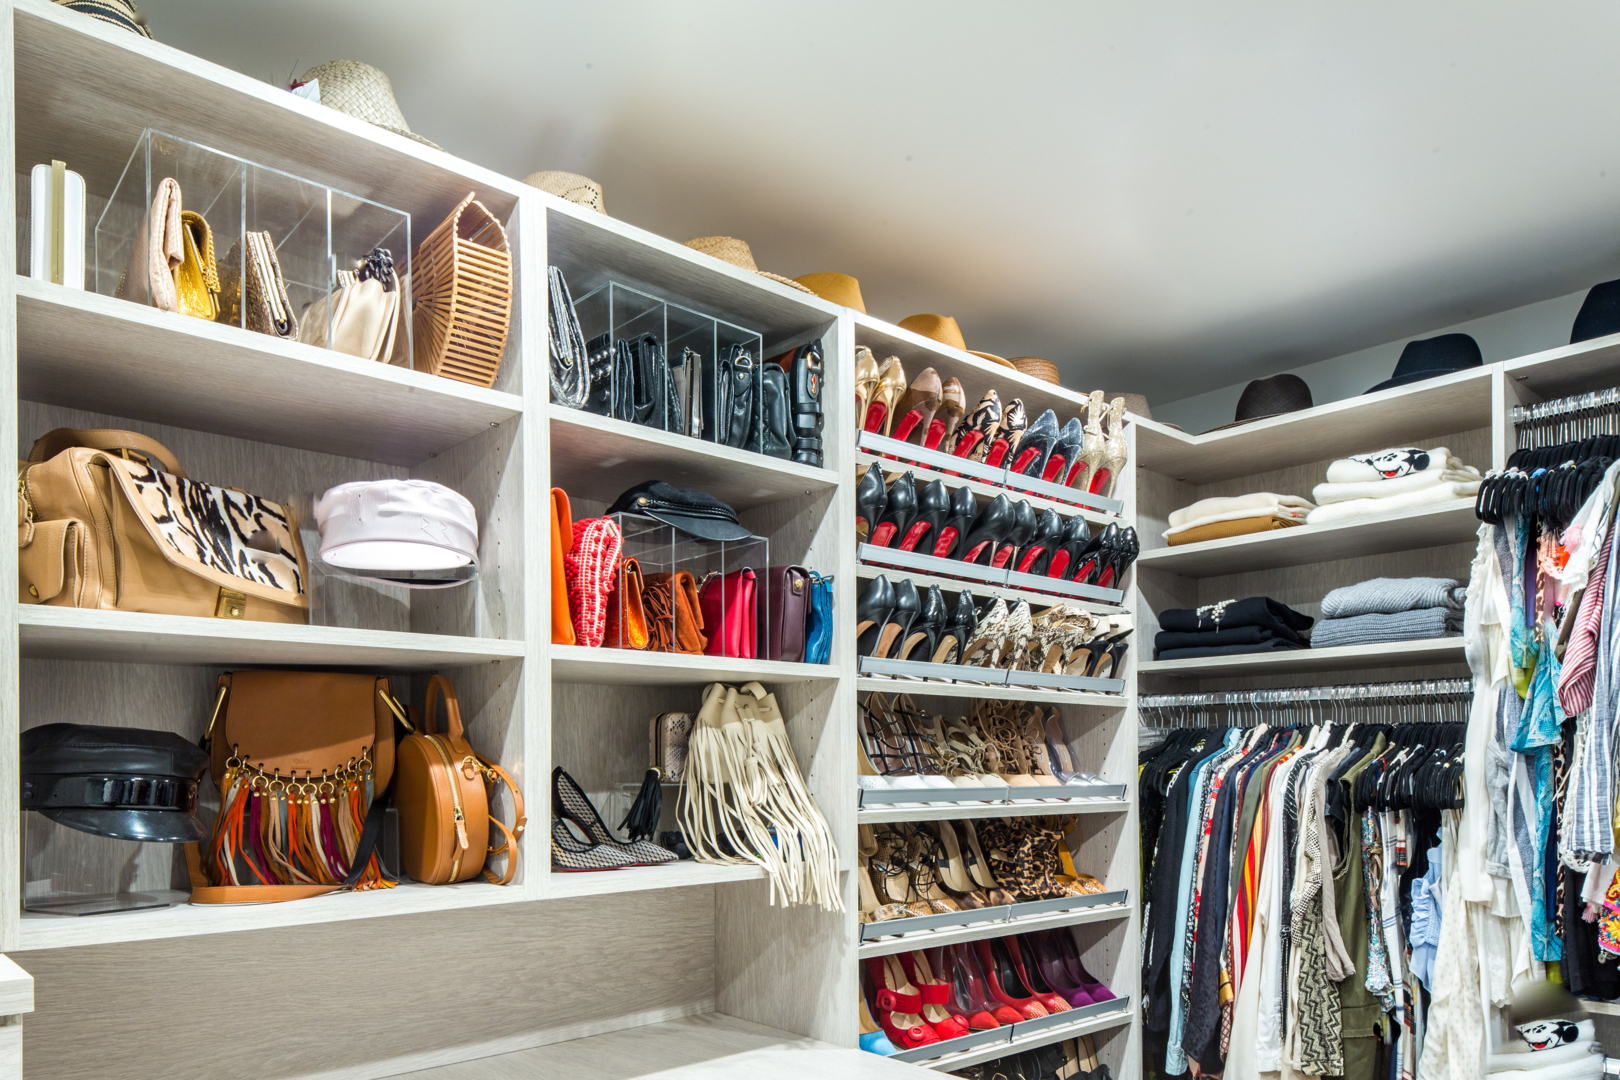 Closet Clean out Tips: Purging